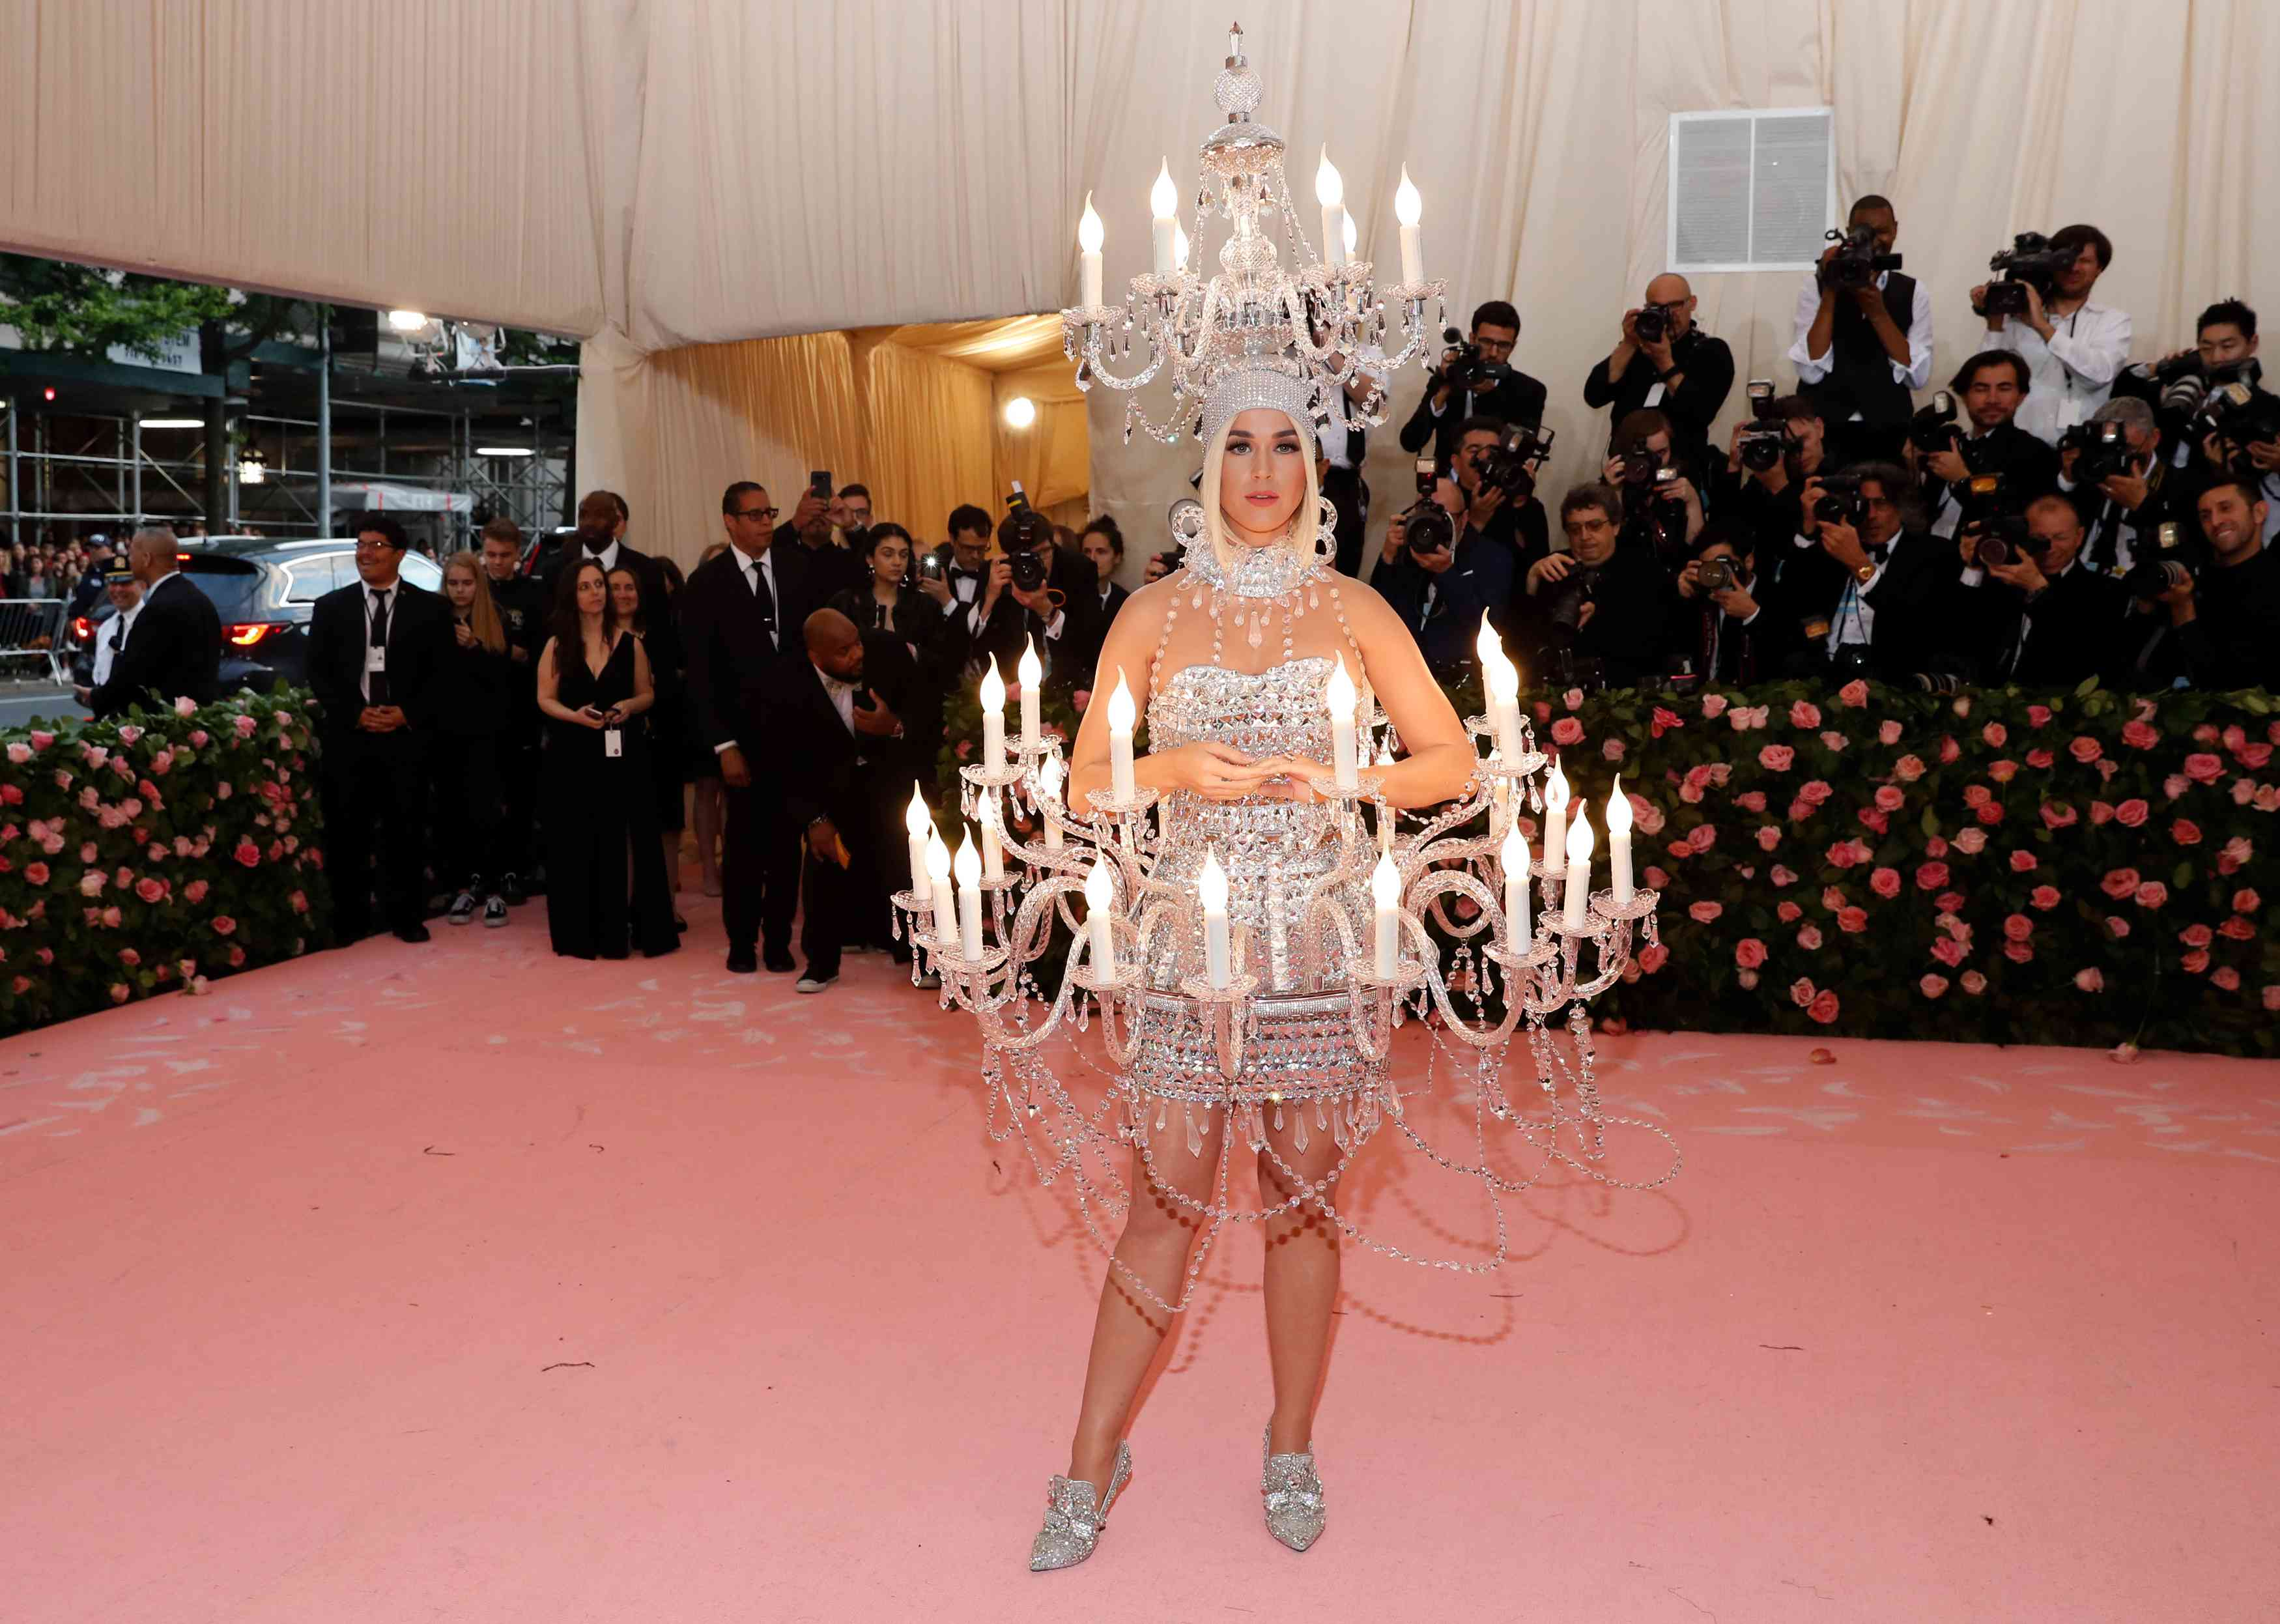 Katy Perry at the Met Gala 2019 | Image credit: Andrew Kelly / Reuters